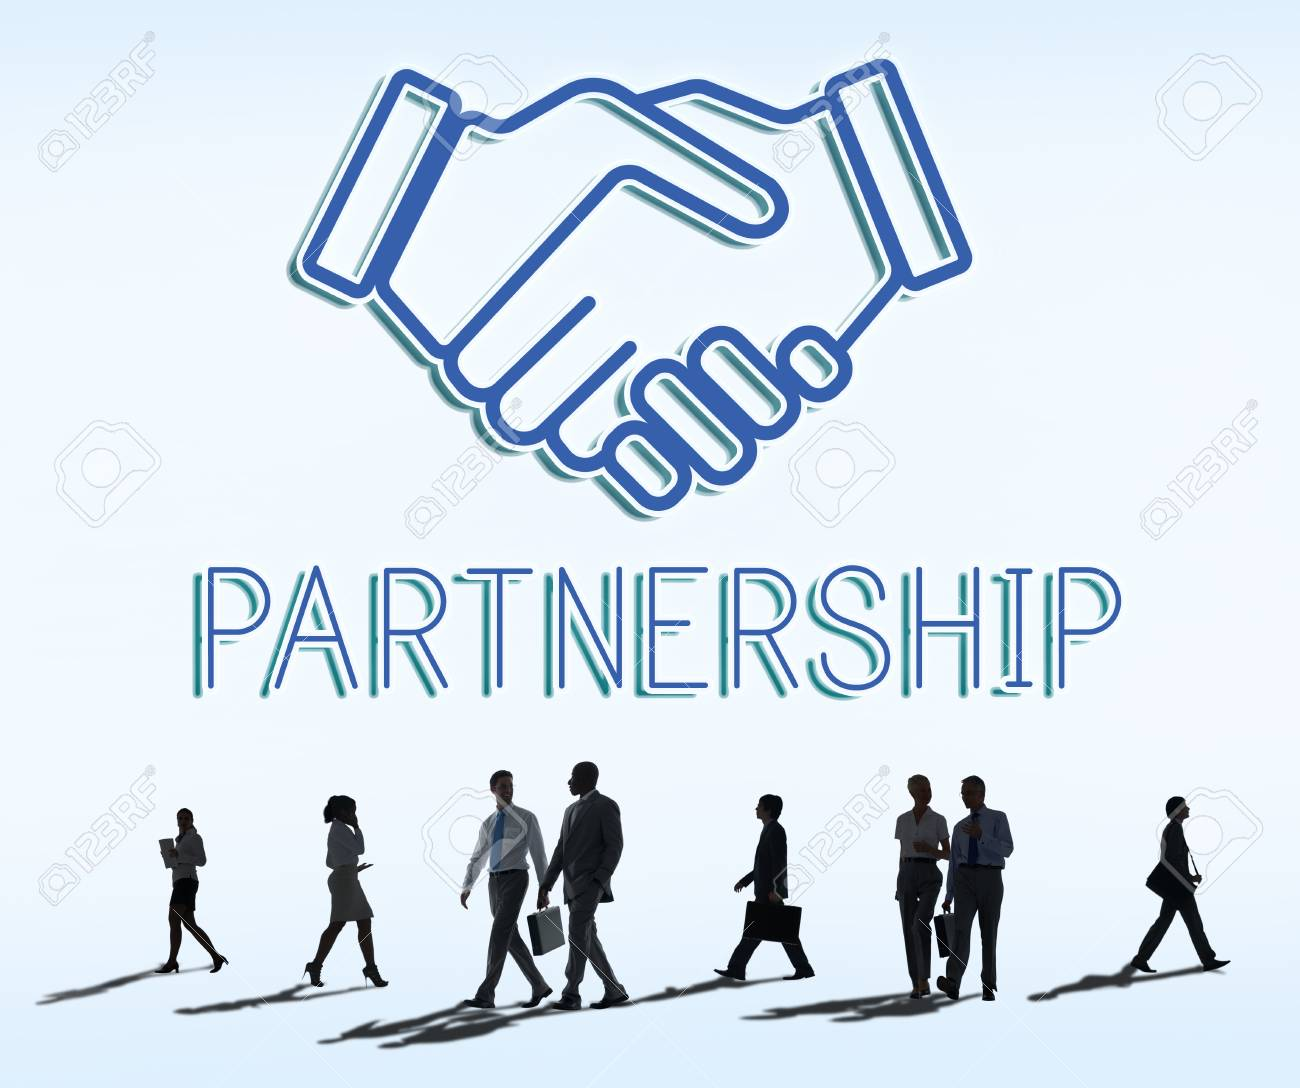 Partnership Agreement Cooperation Collaboartion Concept Stock Photo -  62868472